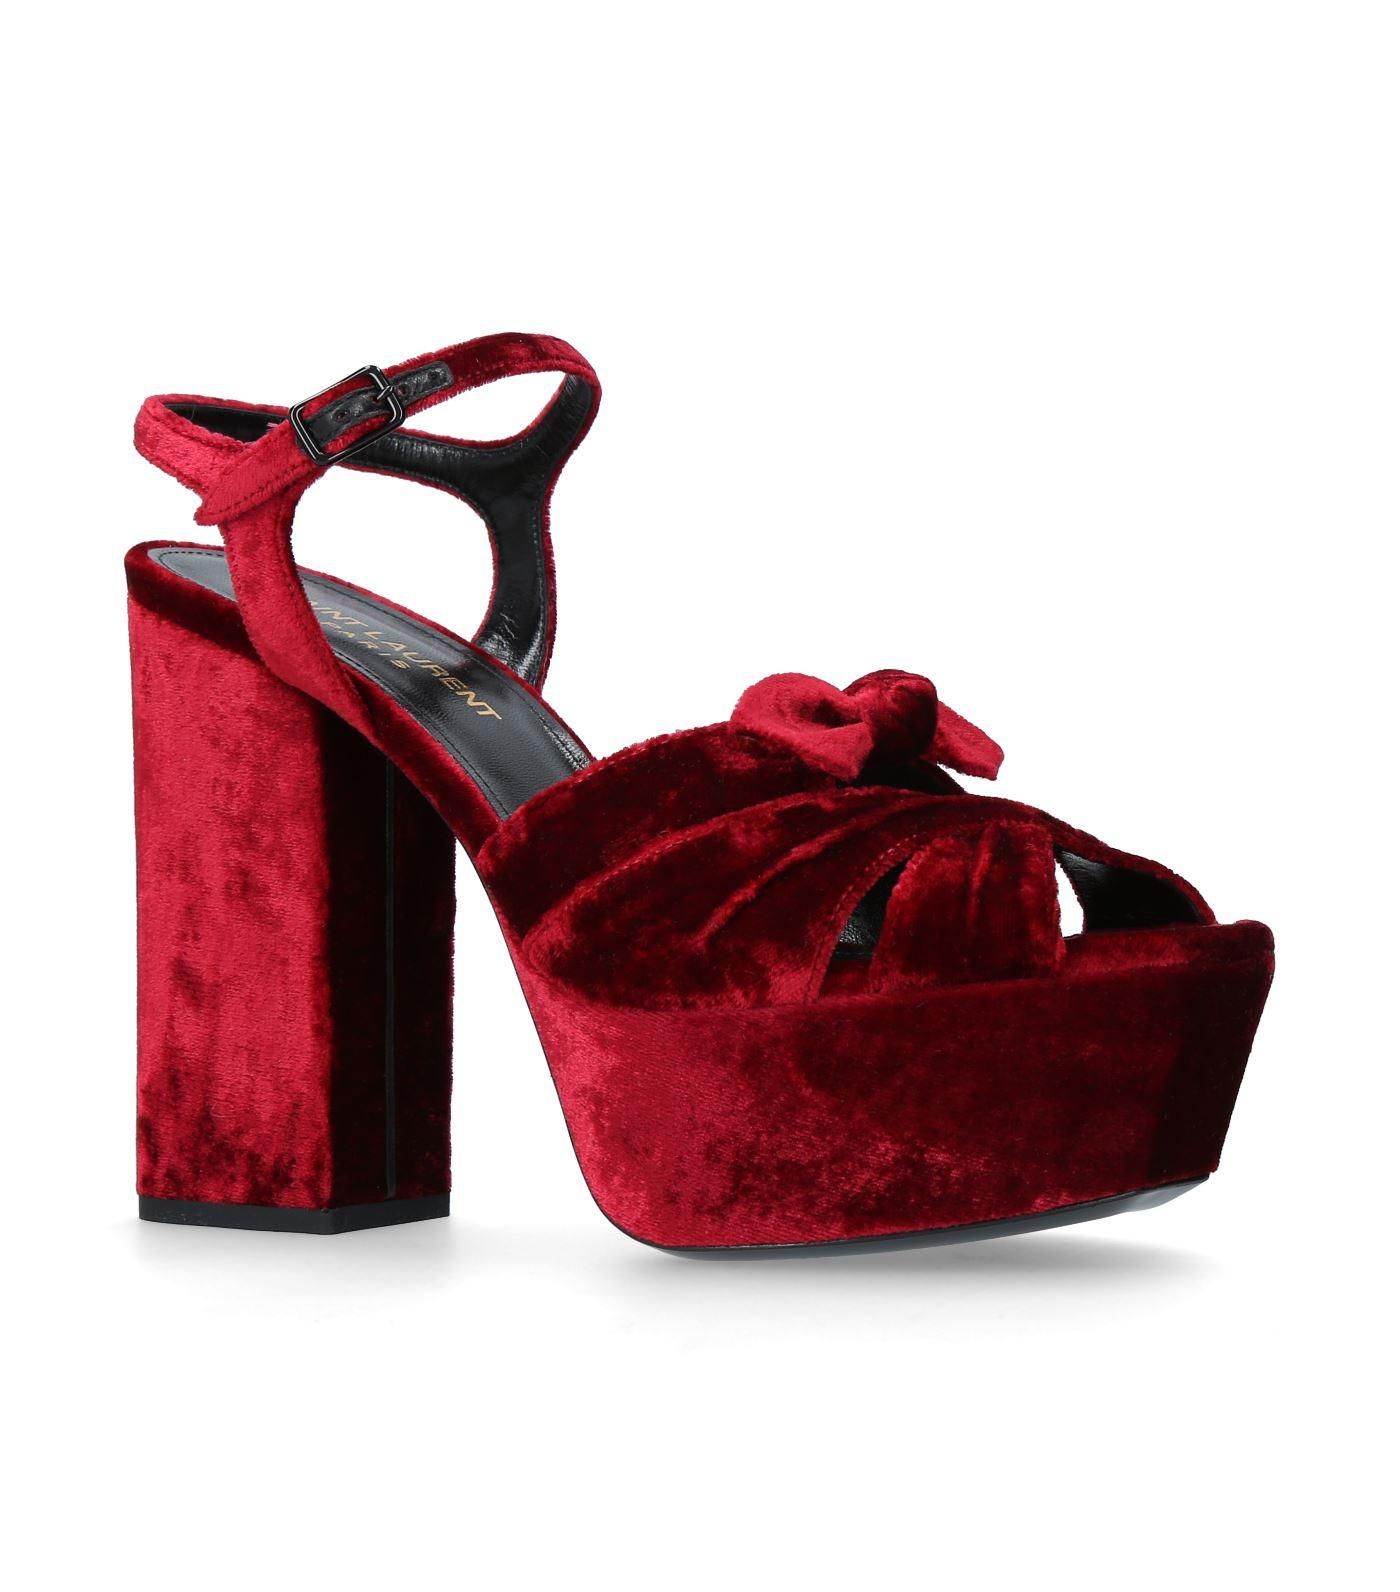 0d8943cb57 Saint Laurent Farrah Bow-Embellished Velvet Platform Sandals In Red ...